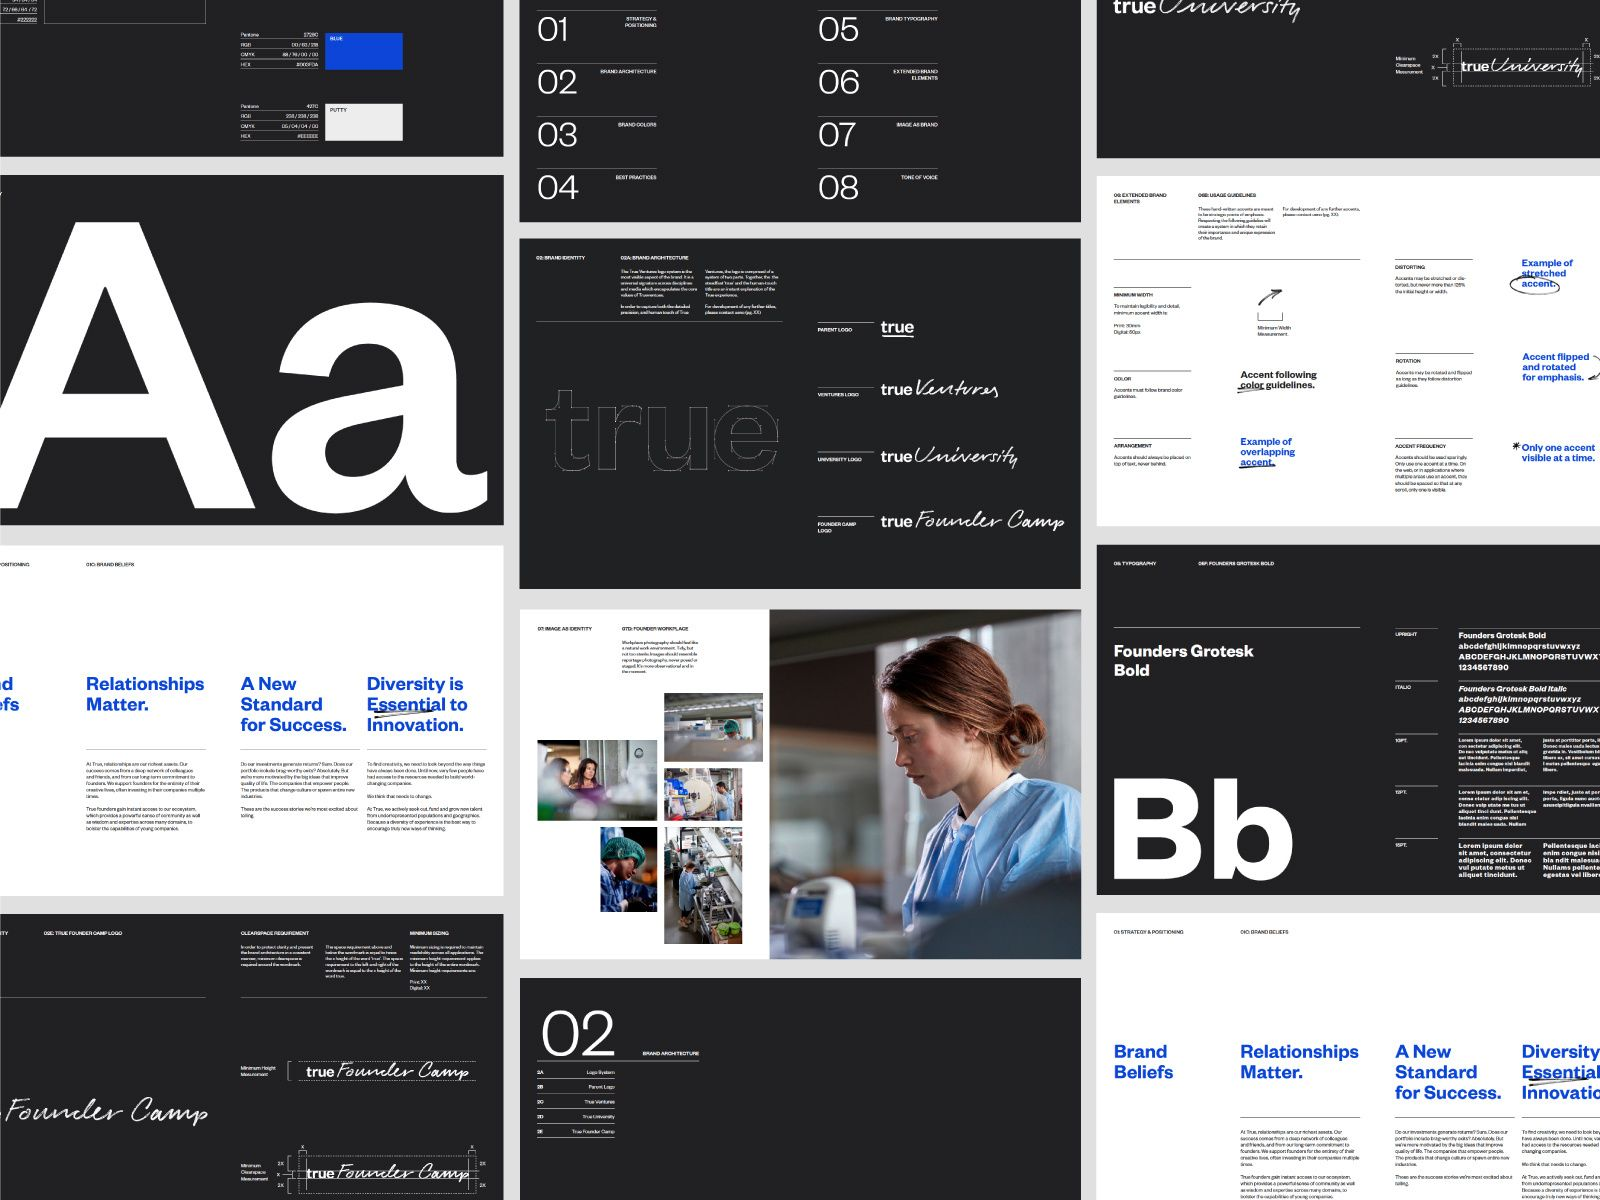 True Ventures Guidelines Brand Guidelines Brand Style Guide Brand Book